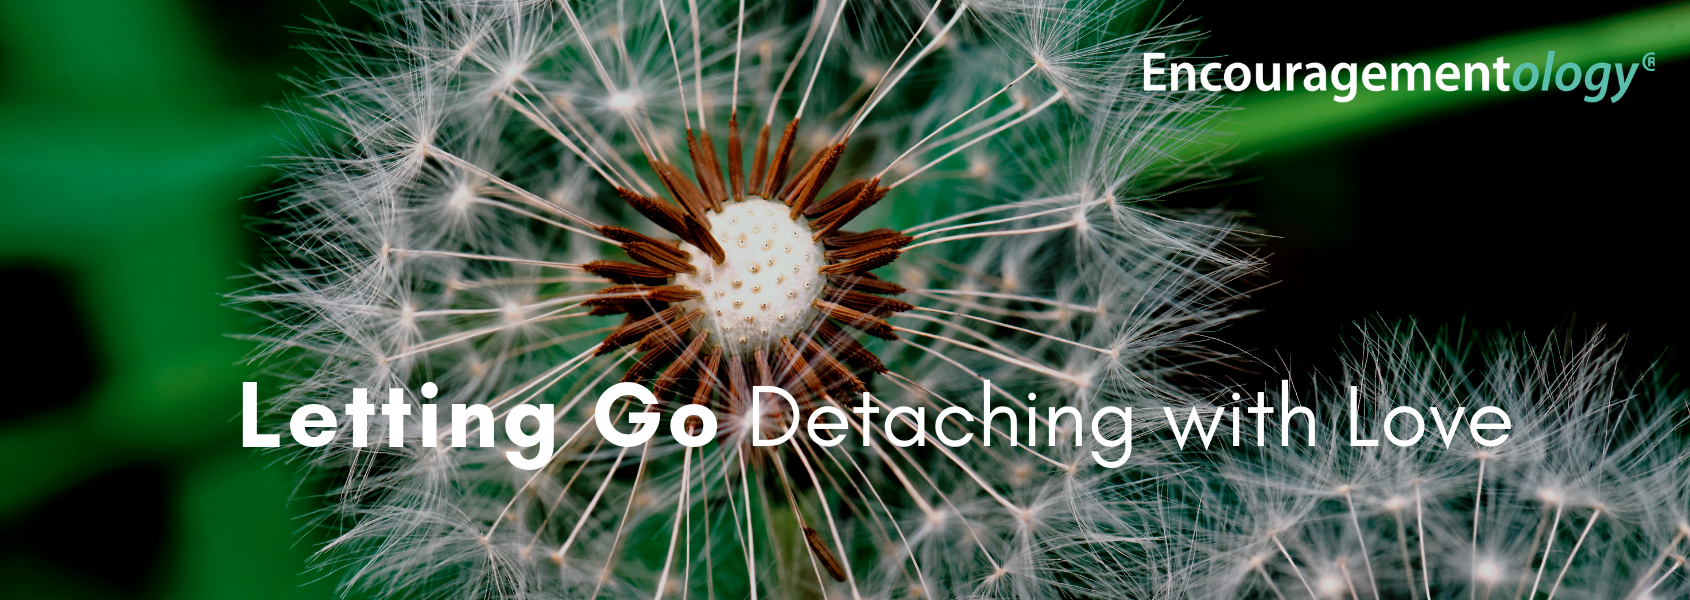 Letting Go Detaching with Love